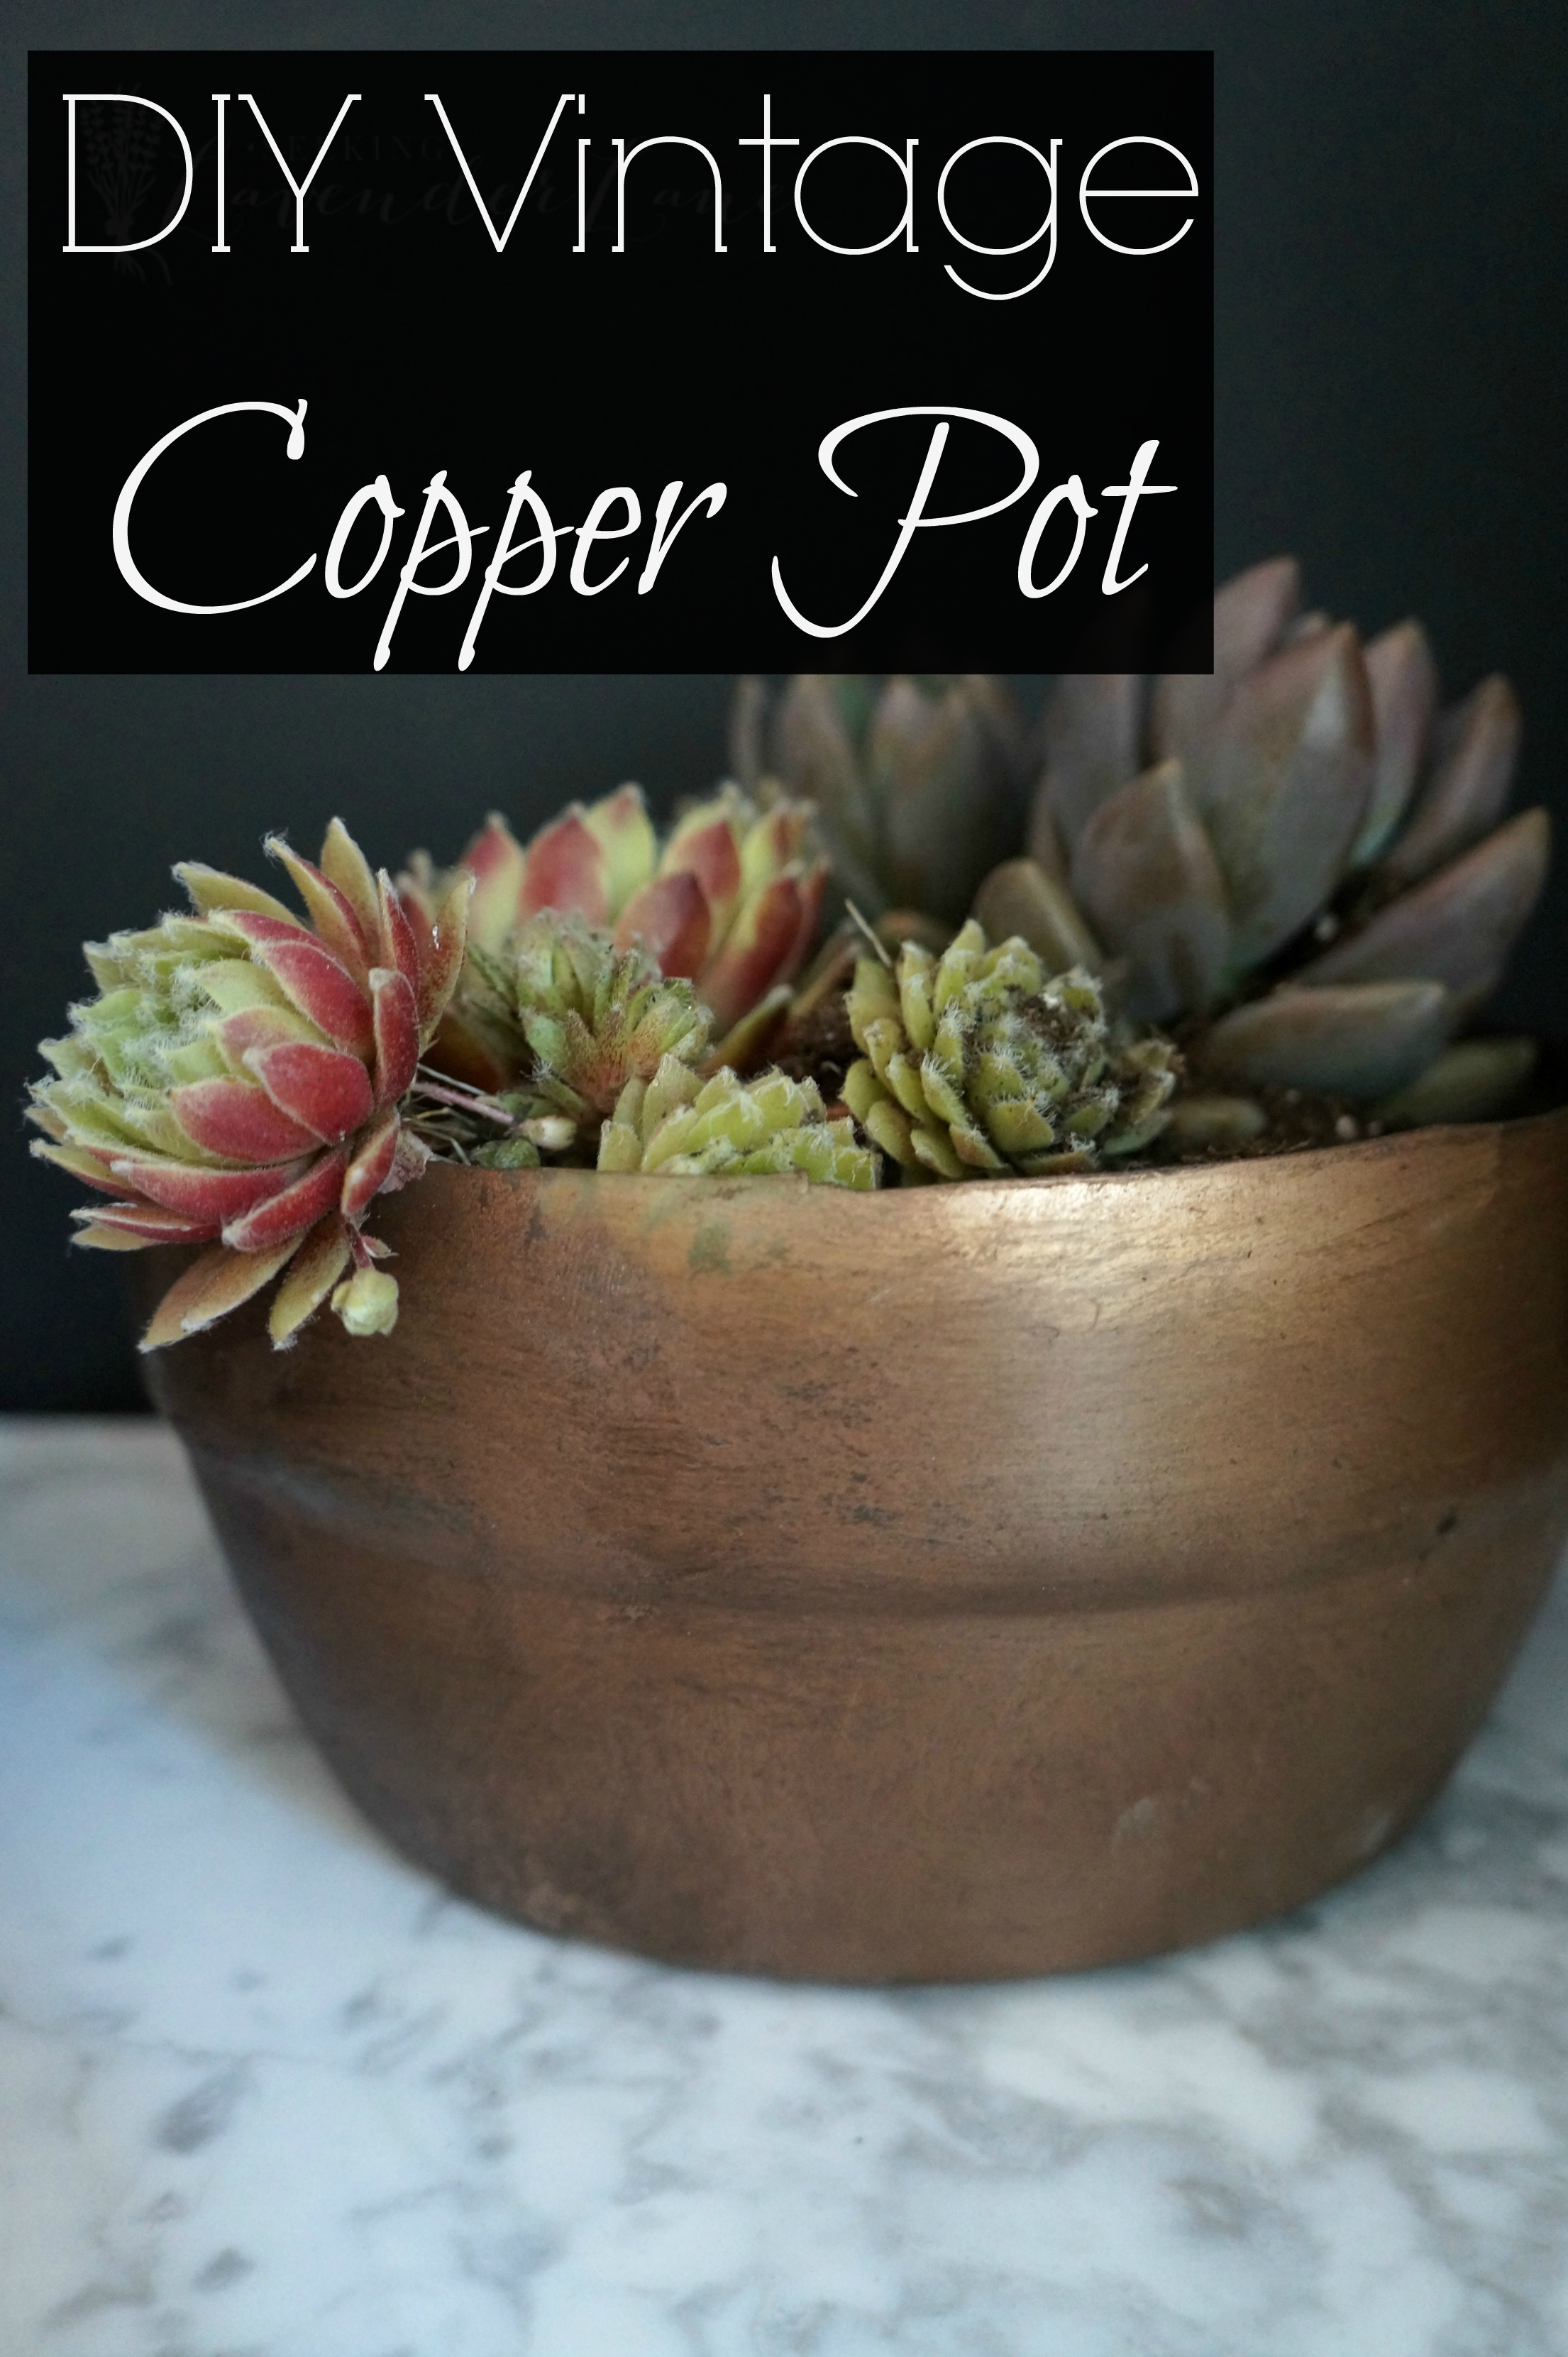 DIY Vintage Copper Pot with logo